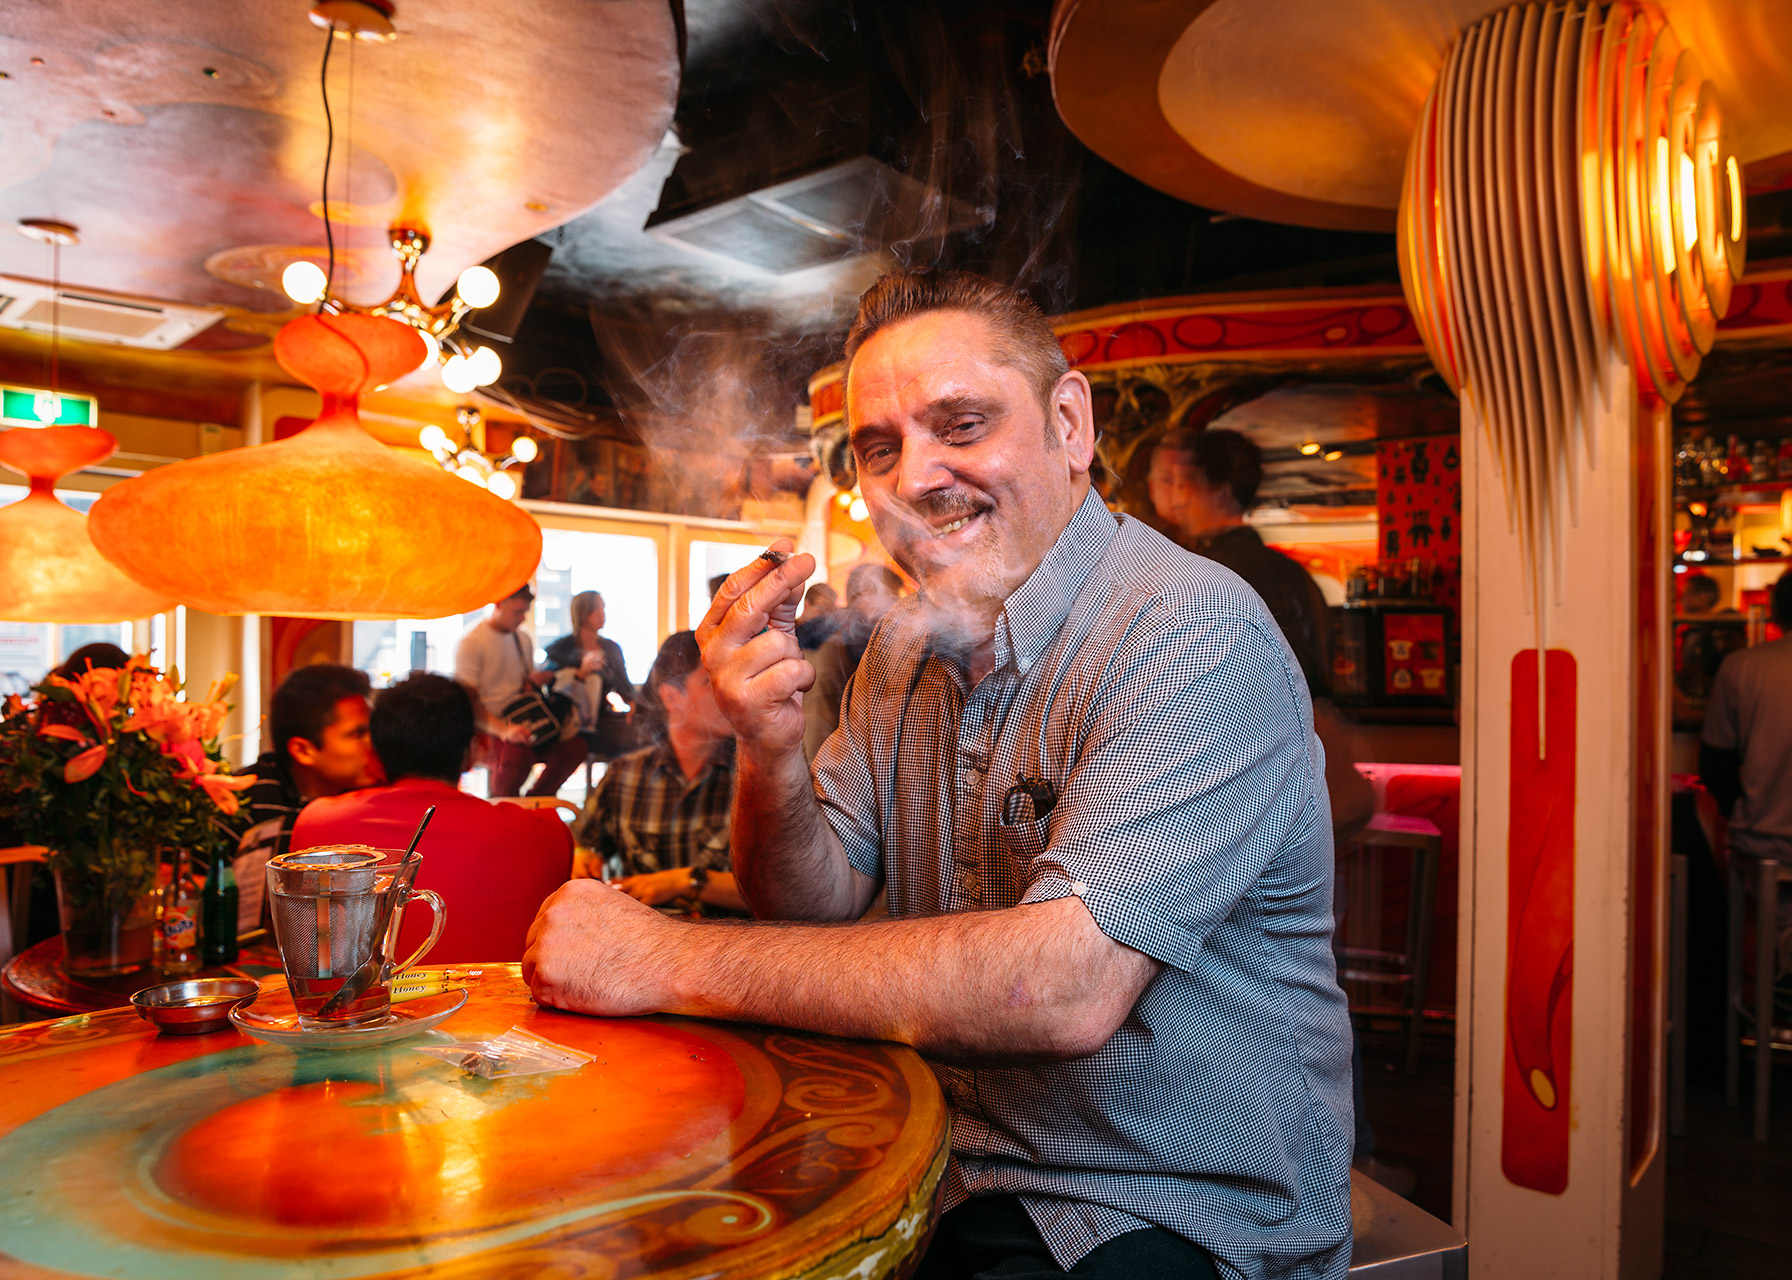 Ron Schuitema, coffee-shop owner, Amsterdam, The Netherlands